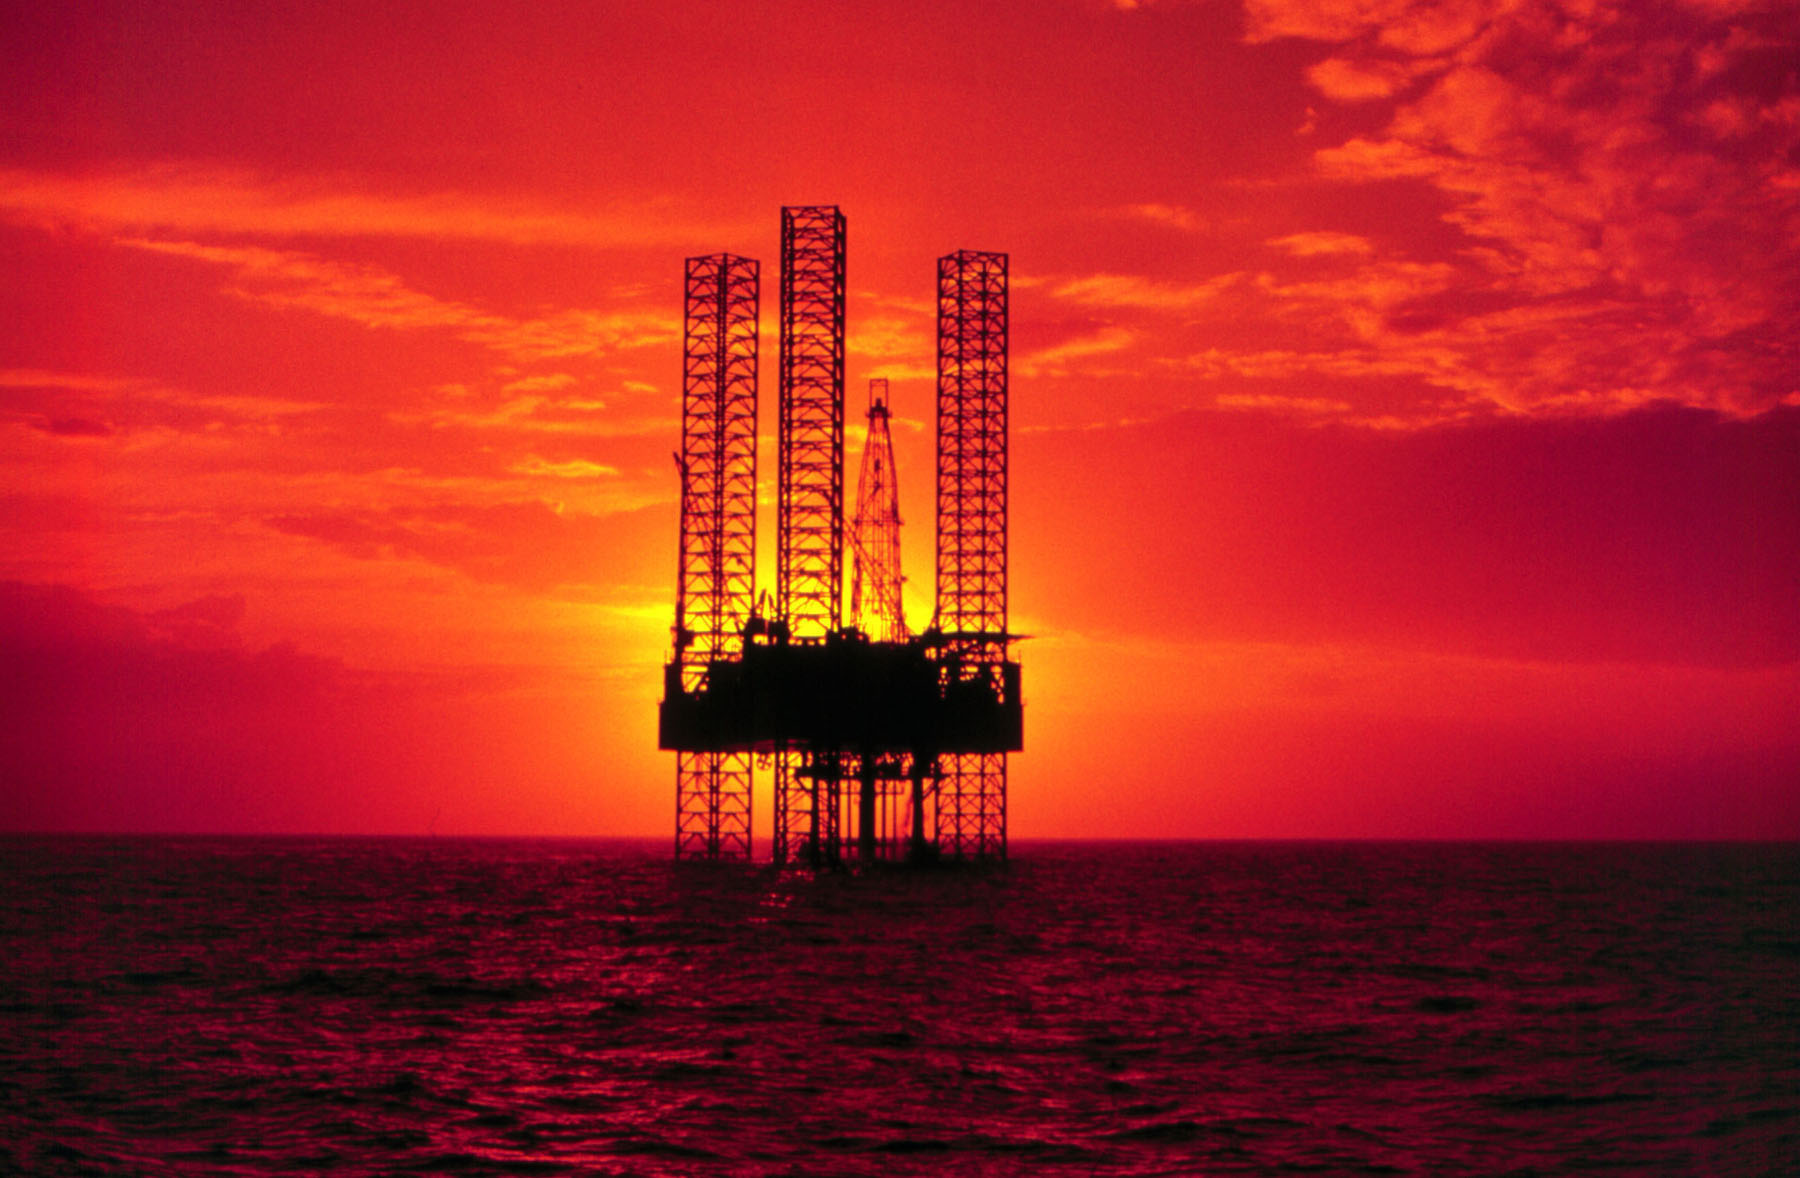 Pennzenergy Company Oil Exploration Drilling Rig In The Gulf Of Mexico During Sunset (Ph